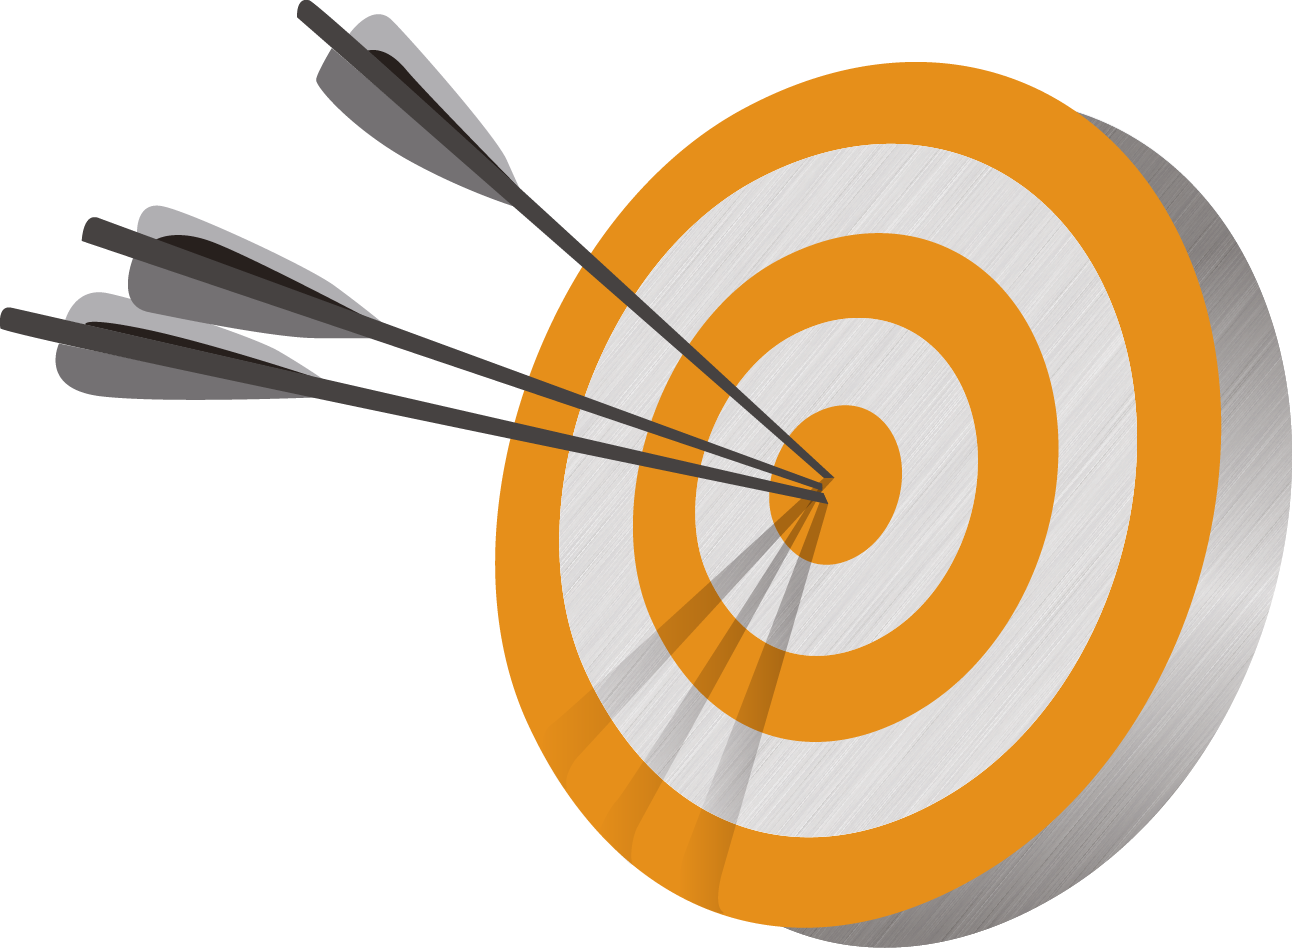 Seo Target Icon Png image #2278